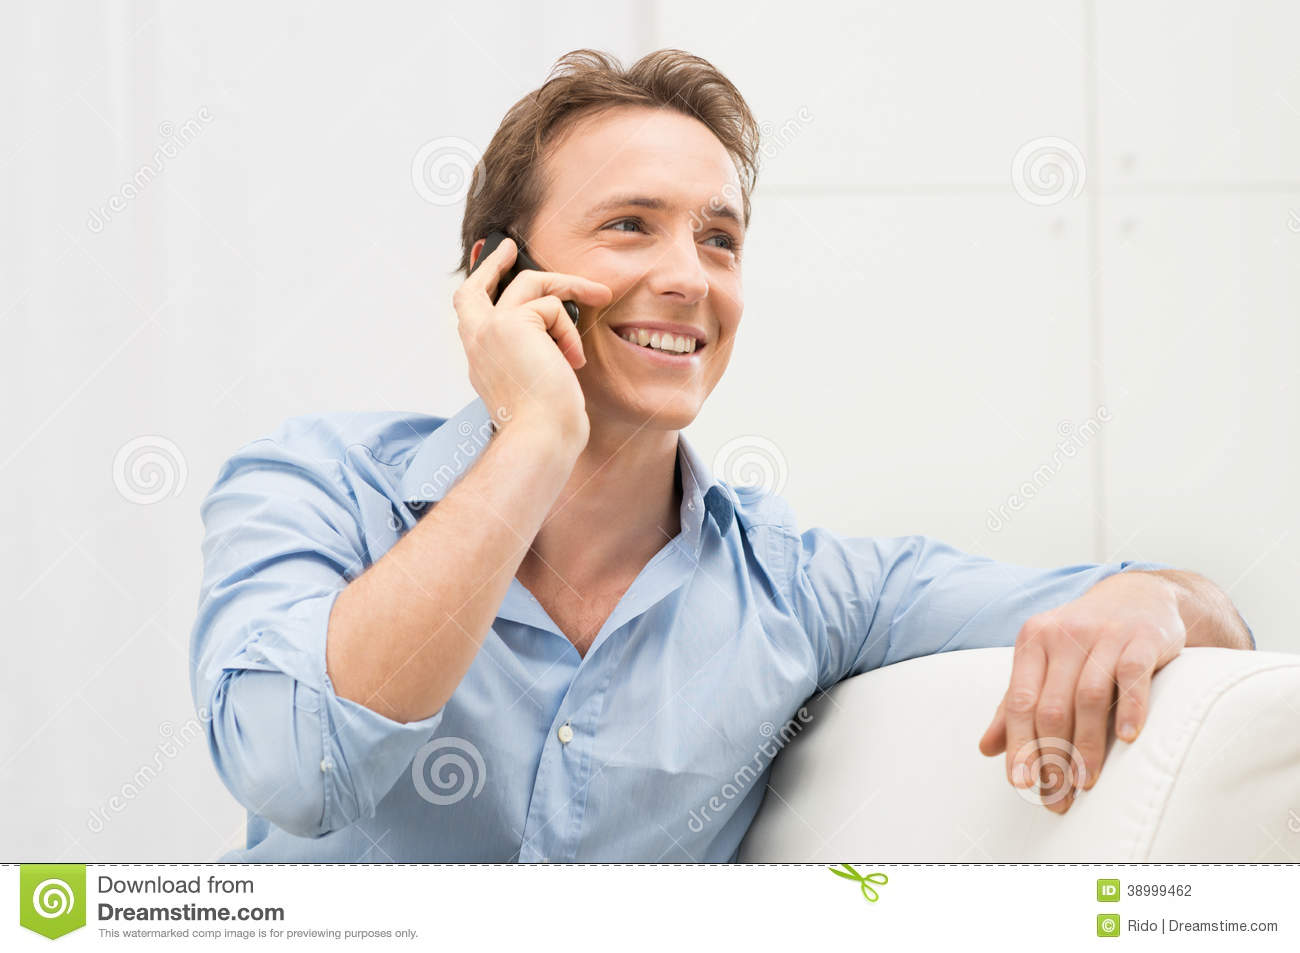 Man Talking On Cell Phone Stock Photo - Image: 38999462